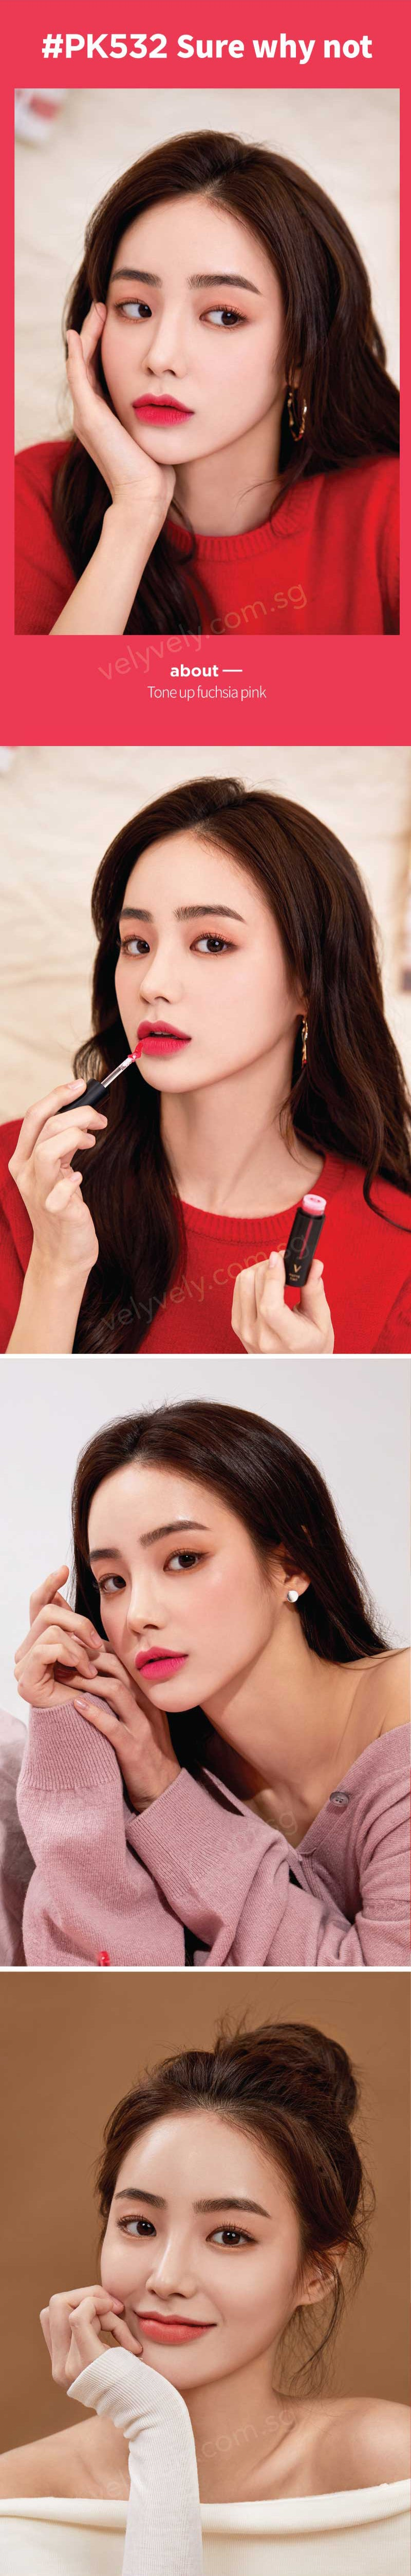 Interested to see how it looks on different styles and looks? Our Vely Model Hong Suzu uses the Vely Vely Matte Tint Lipstick for different looks!